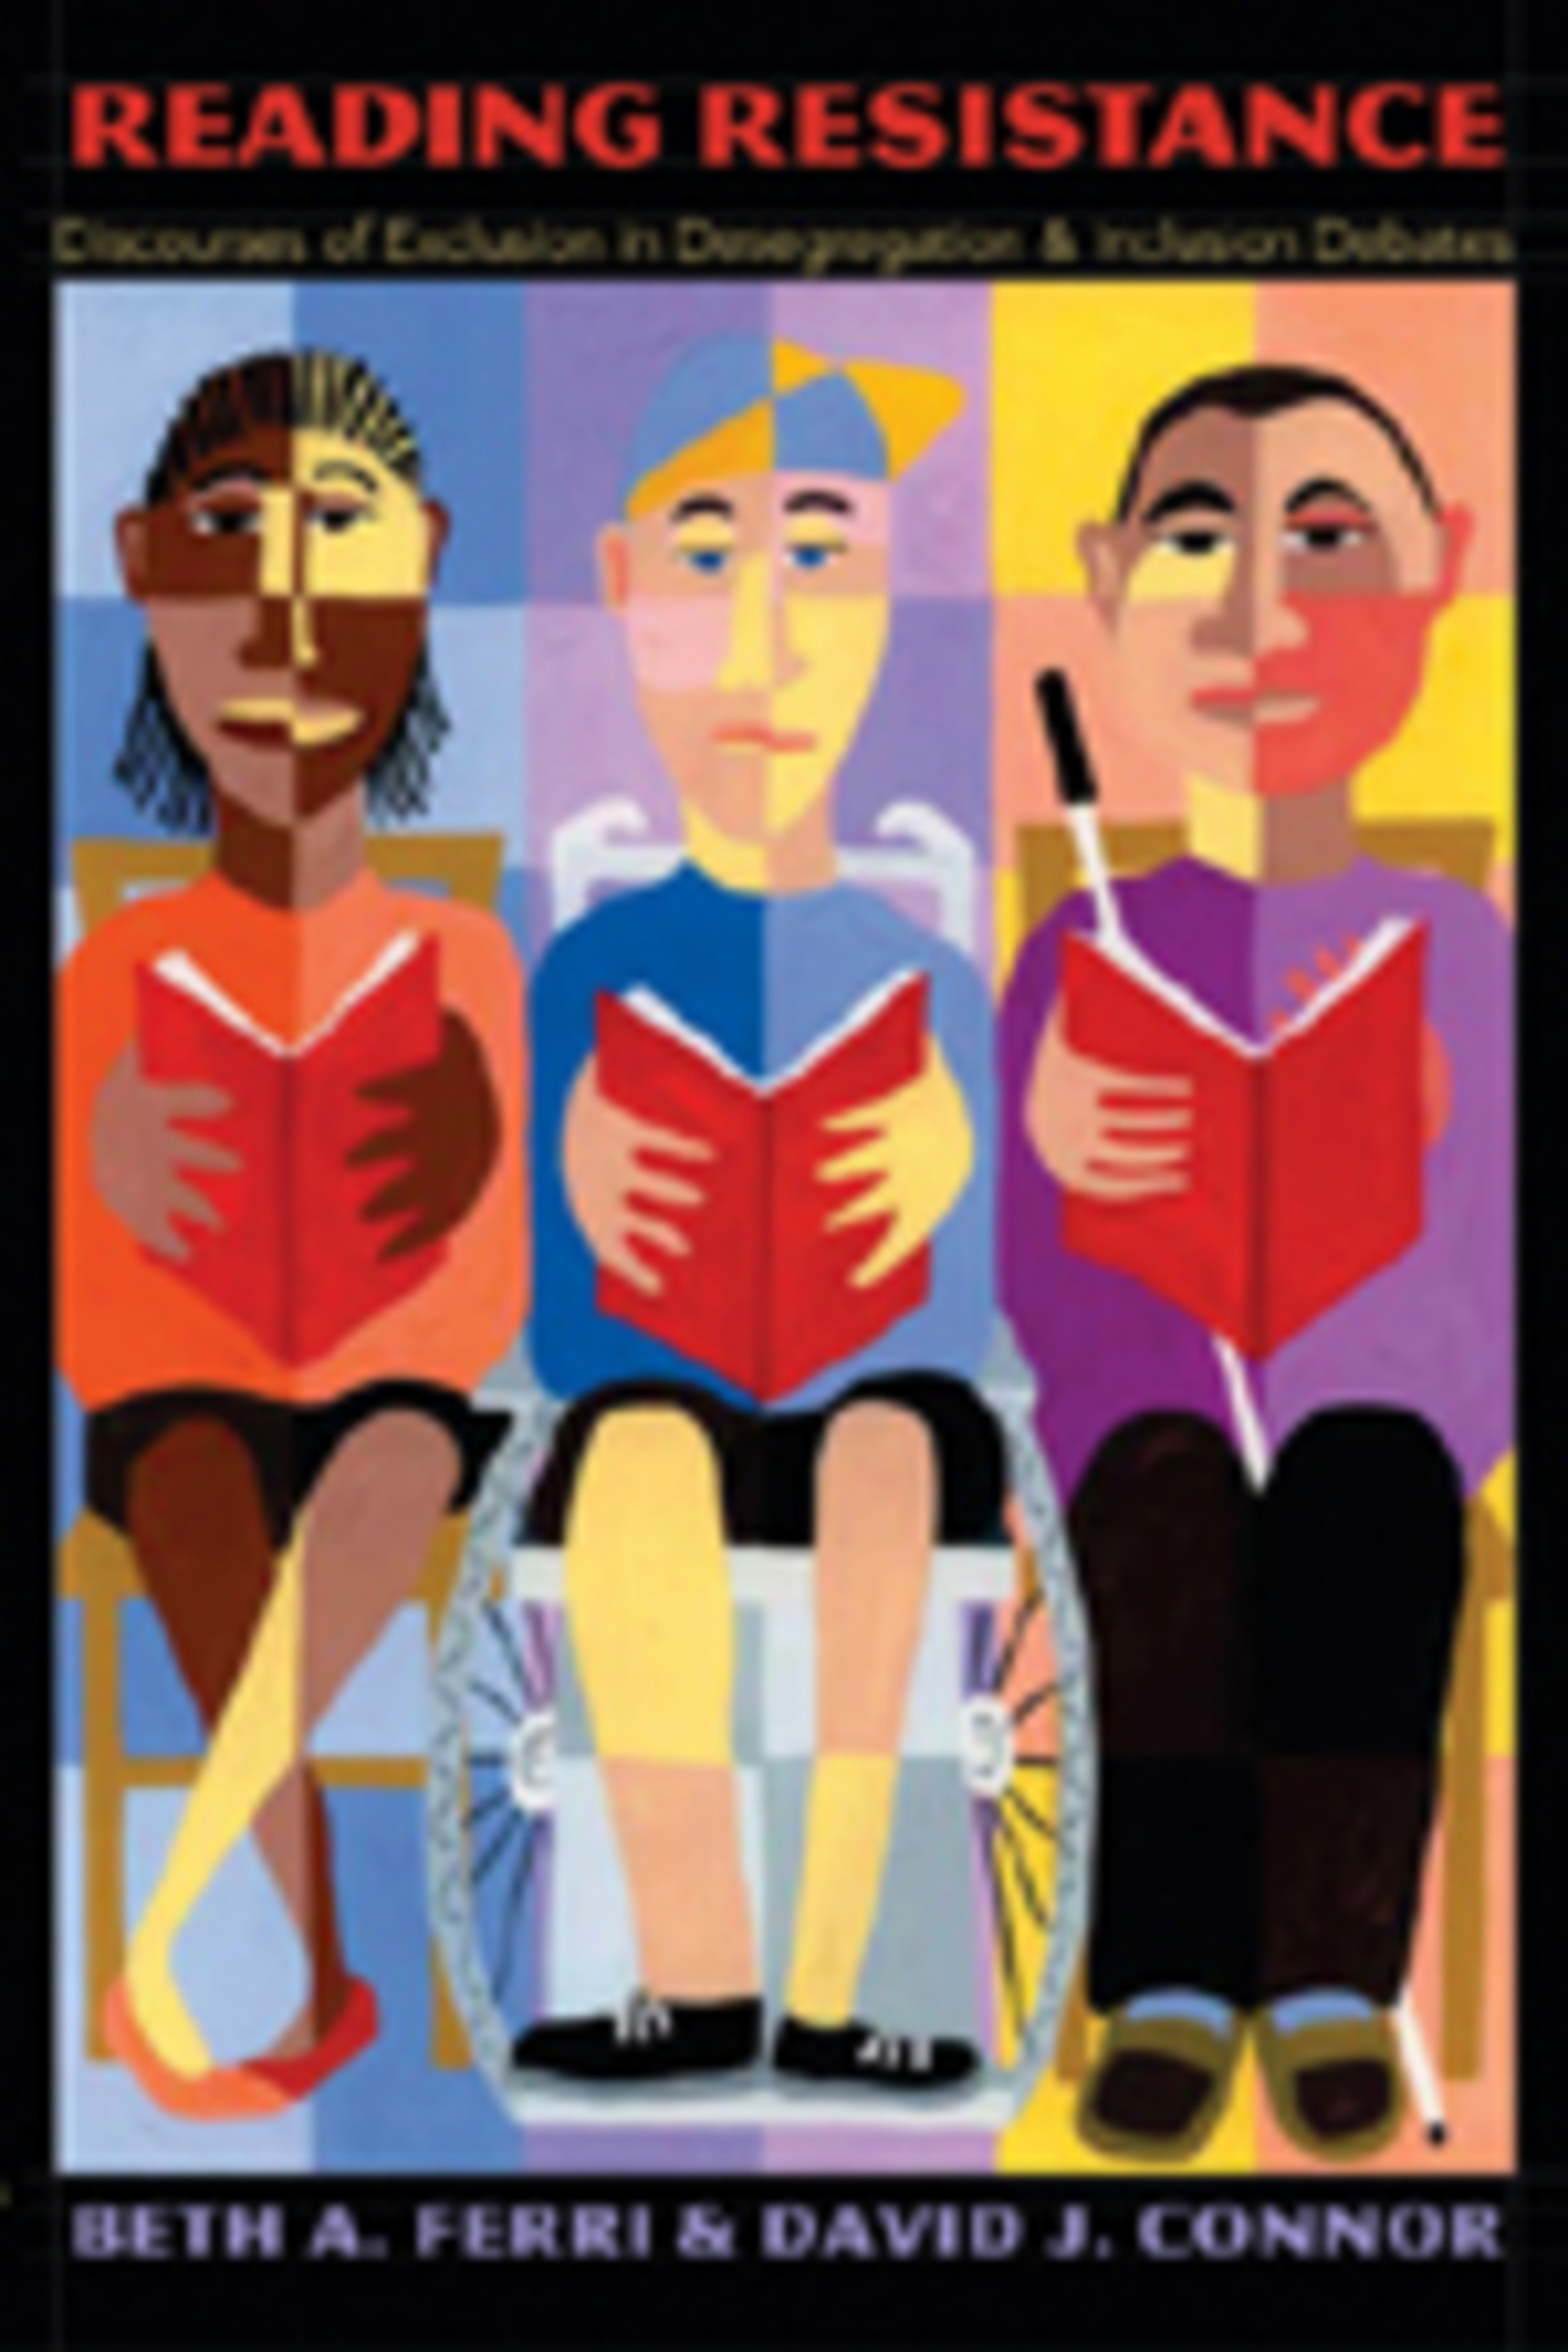 Title: Reading Resistance